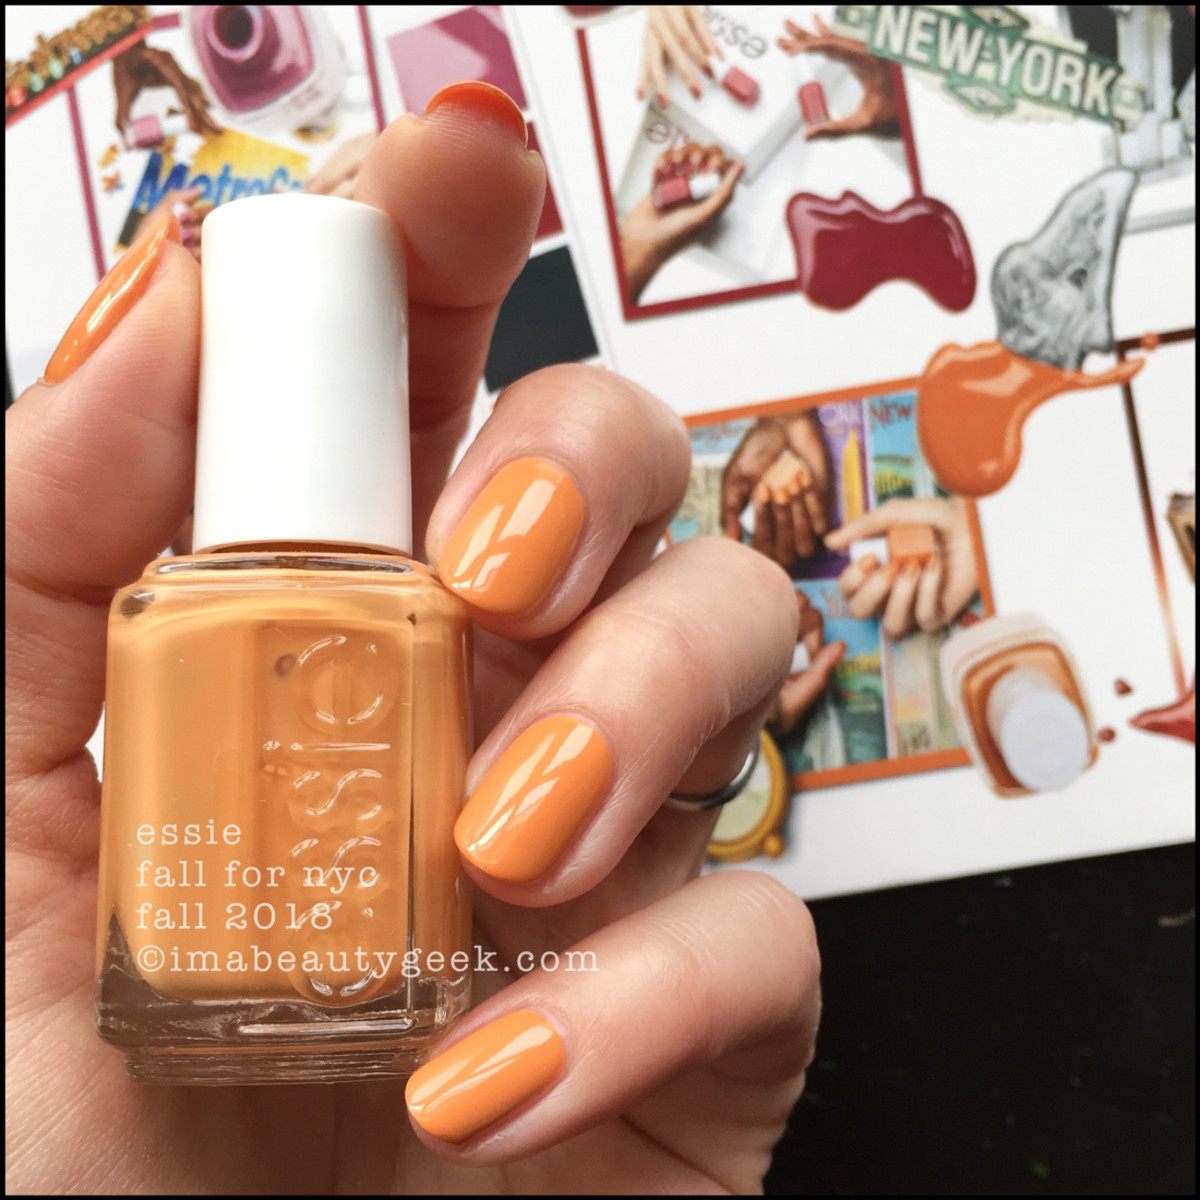 Essie Fall For NYC _ Essie Fall 2018 Collection